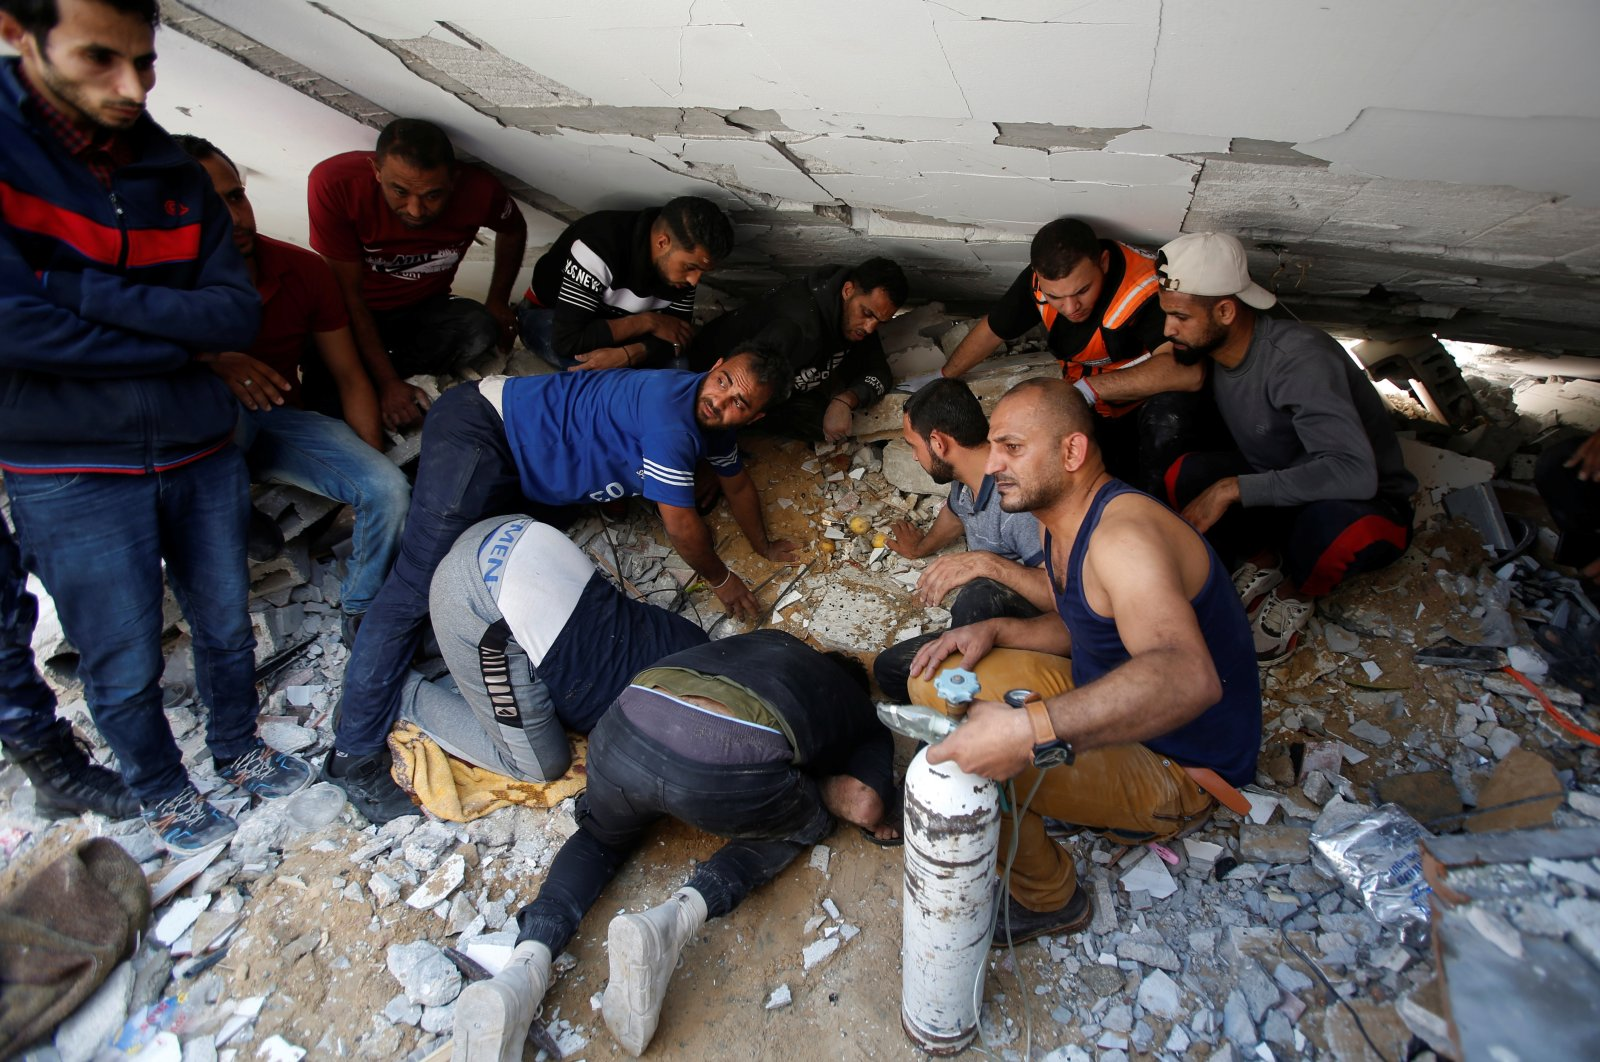 Rescuers search for people in the rubble of a building at the site of Israeli airstrikes, in Gaza City, May 16, 2021. (Reuters Photo)